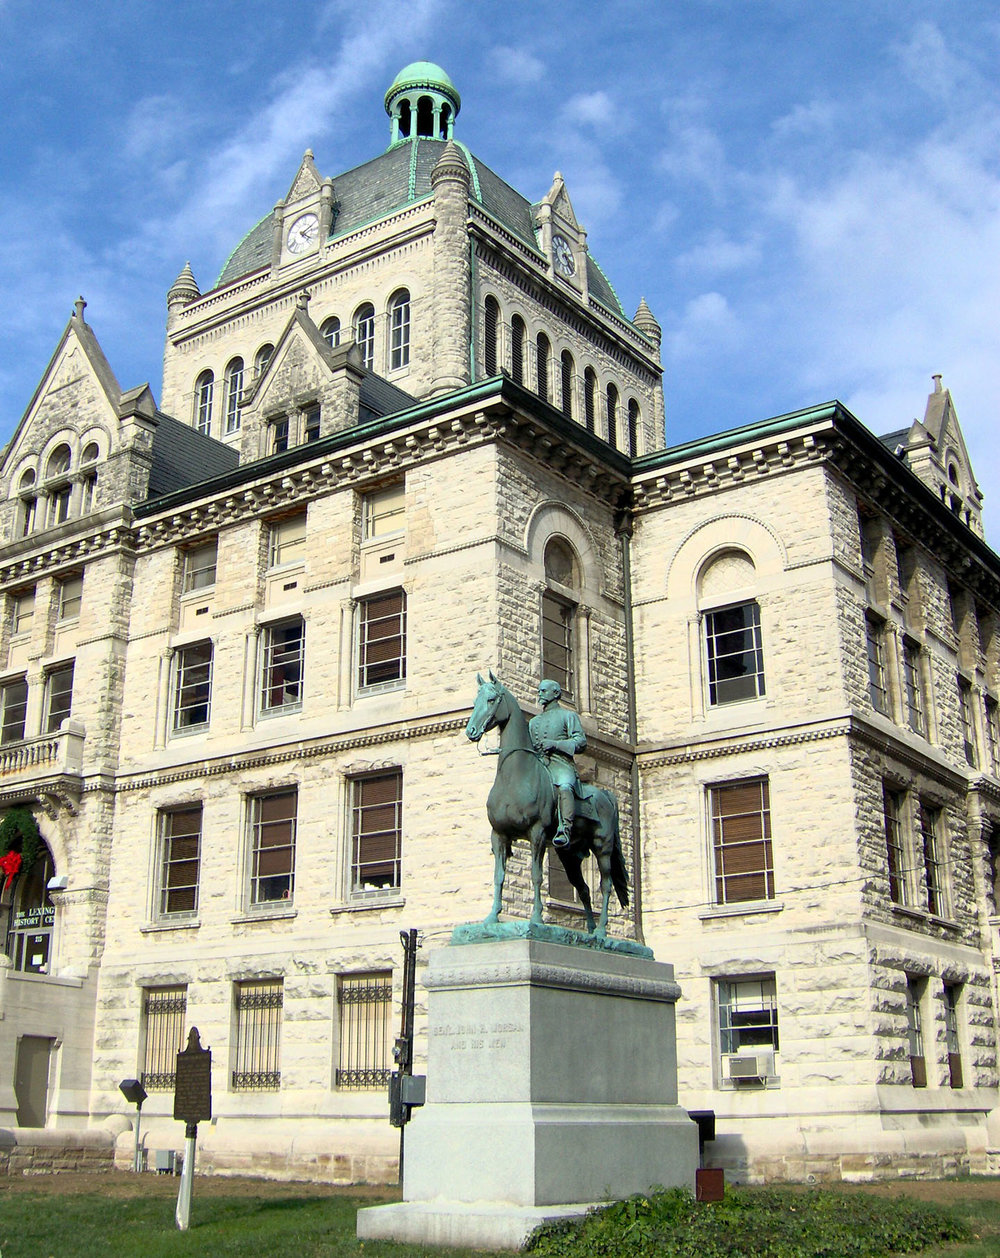 Lexington - Two Confederate statues were removed from the historic courthouse. Statues of John C. Breckinridge, a U.S. vice president and Confederate secretary of war, and Confederate General John Hunt Morgan, will be moved into storage until the city works out an agreement to move them into Lexington Cemetery, where the two men are buried. Private donors agreed to pay the fee for relocation.